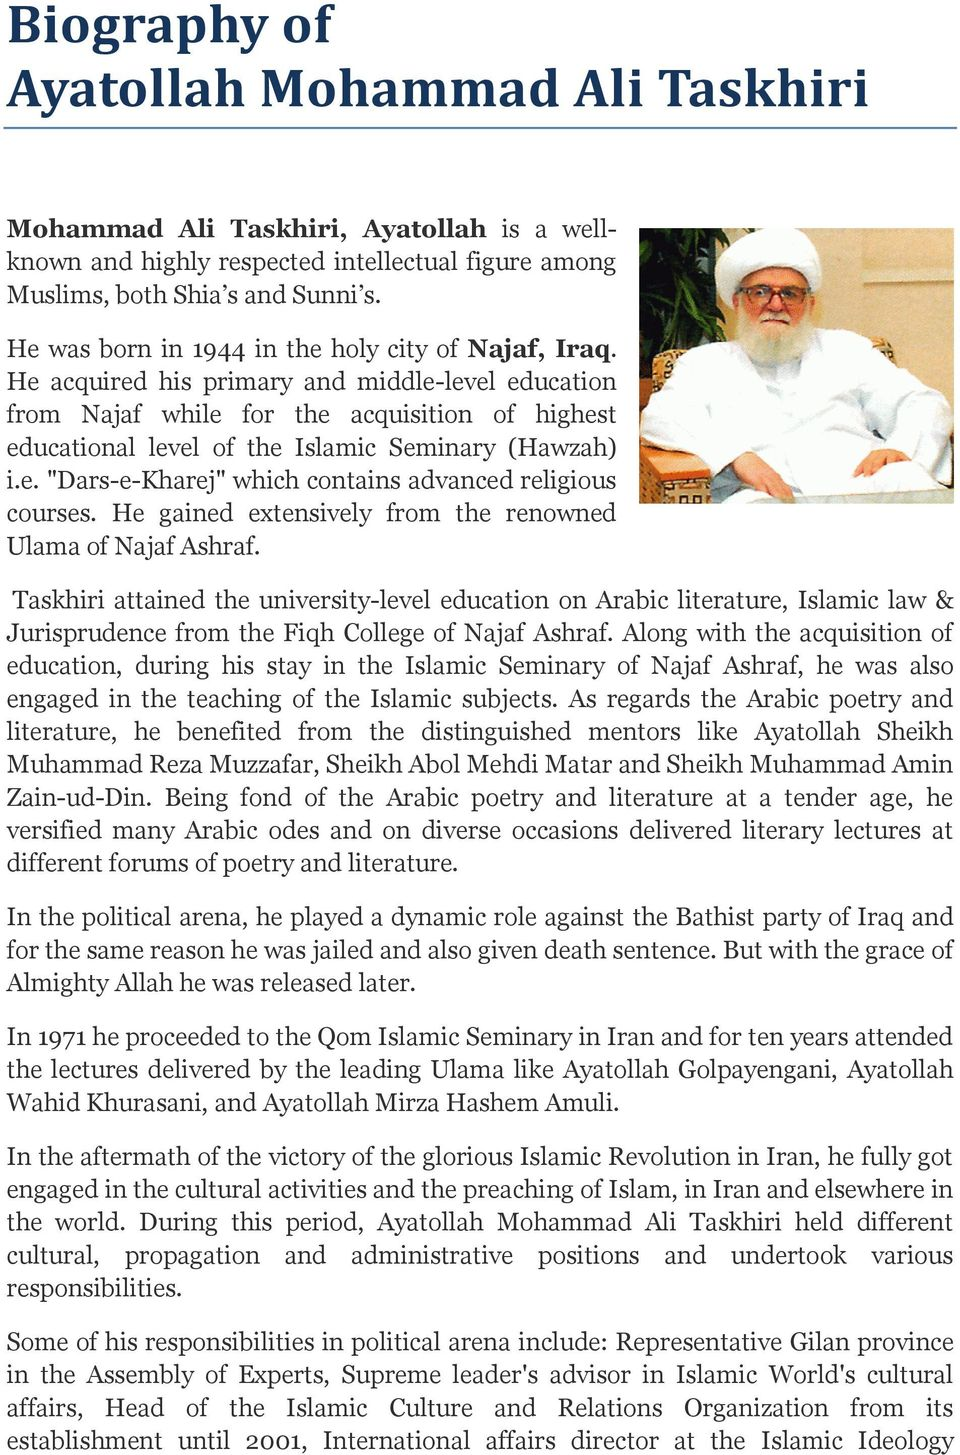 "He acquired his primary and middle-level education from Najaf while for the acquisition of highest educational level of the Islamic Seminary (Hawzah) i.e. ""Dars-e-Kharej"" which contains advanced religious courses."